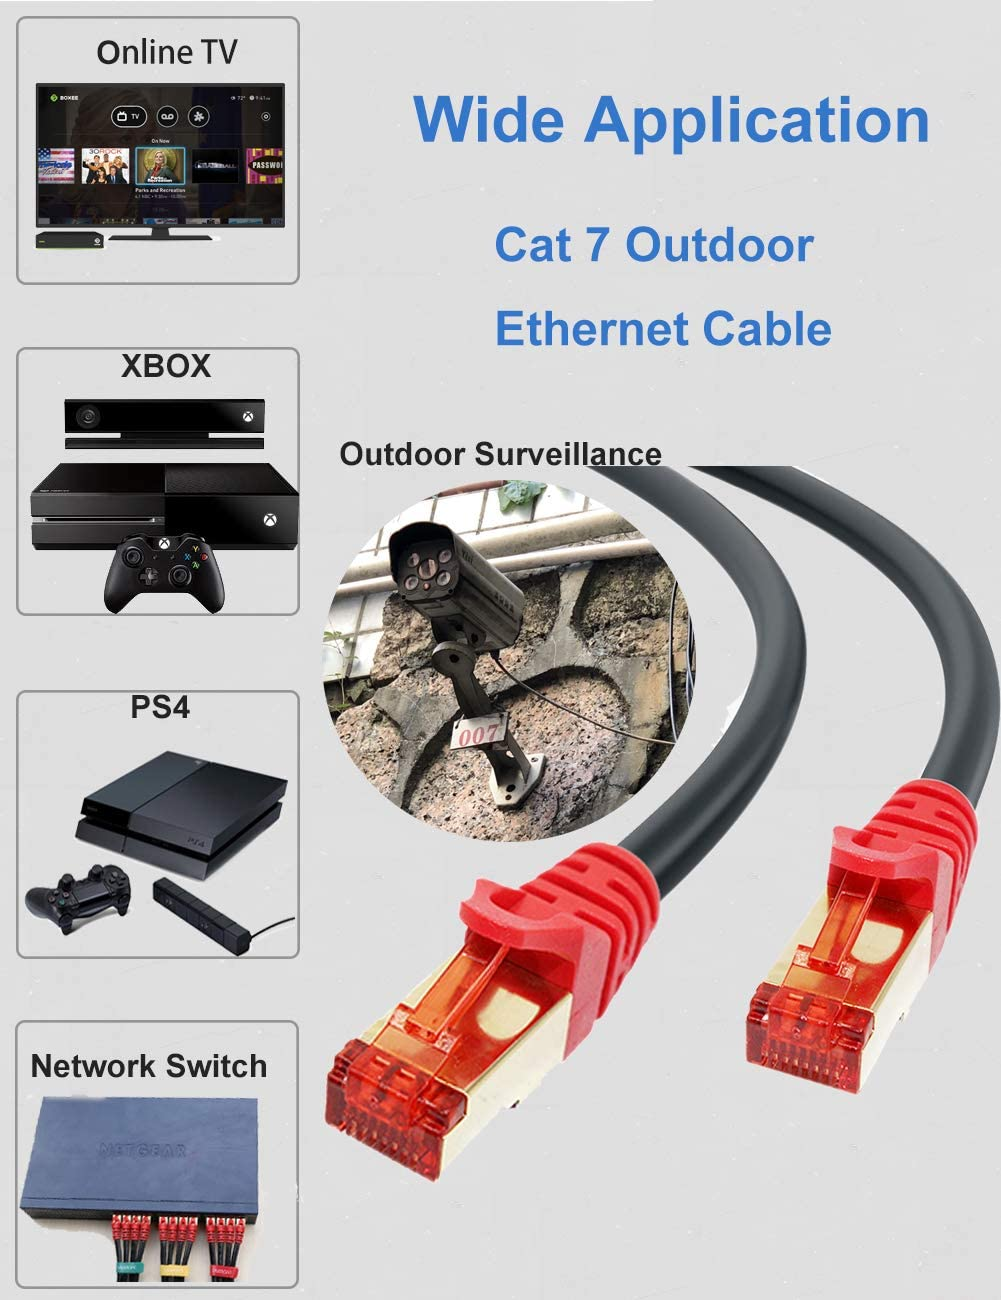 Cat 7 Outdoor Ethernet Cable 50 ft SNANSHI Cat 7 Outdoor Network Cable SFTP Gigabit 10//100//1000Mbit//s with Gold Plated Lead Waterproof Ethernet Cable Direct Burial Ethernet Cable 50 ft